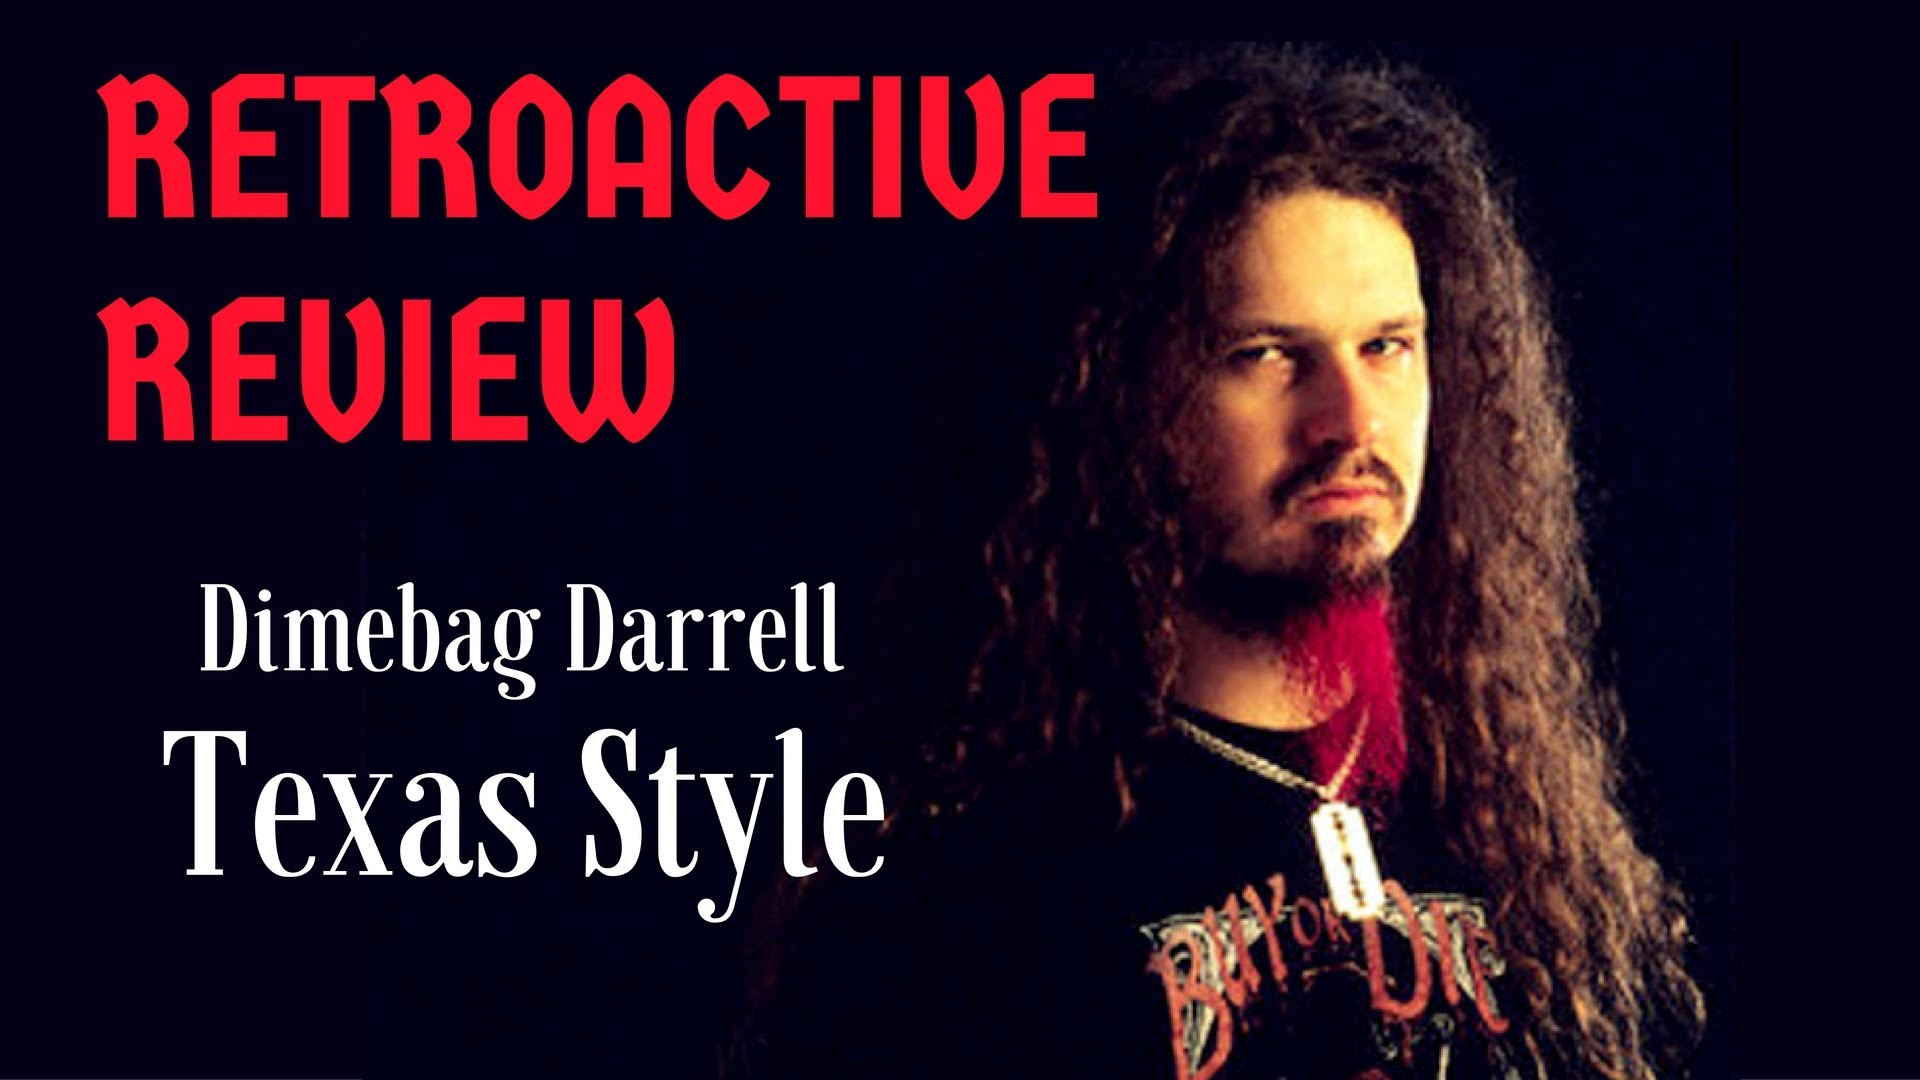 1920x1080 Dimebag Darrell: Texas Style - RETROACTIVE REVIEW